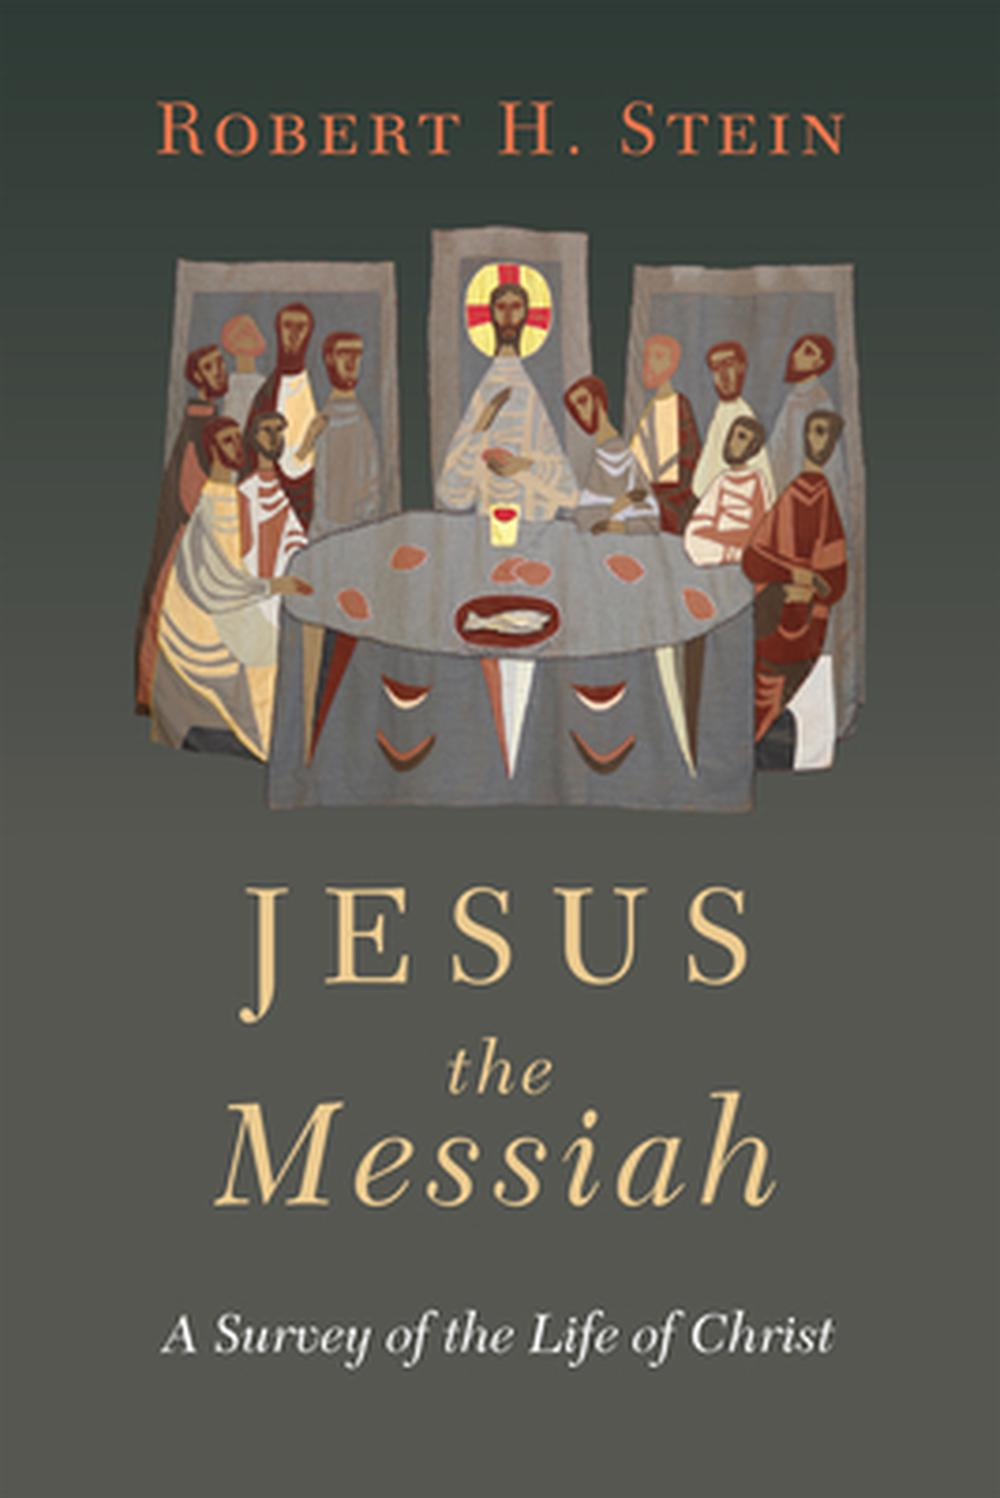 Jesus the Messiah: A Survey of the Life of Christ by Robert H. Stein, ISBN: 9780830851850